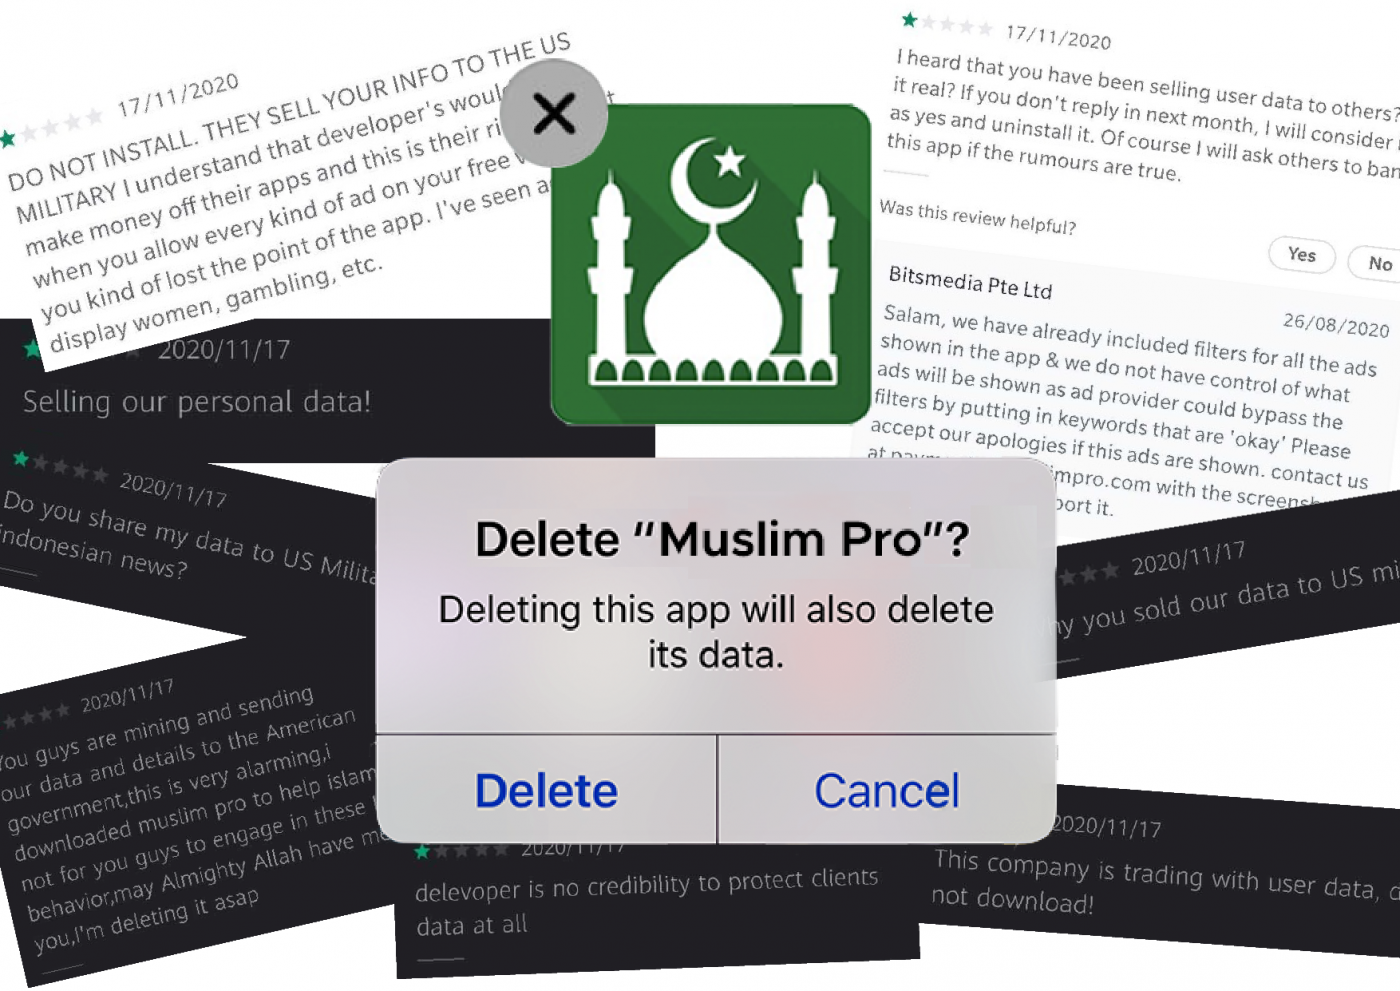 French app users sue Muslim Pro over alleged data sharing with US military